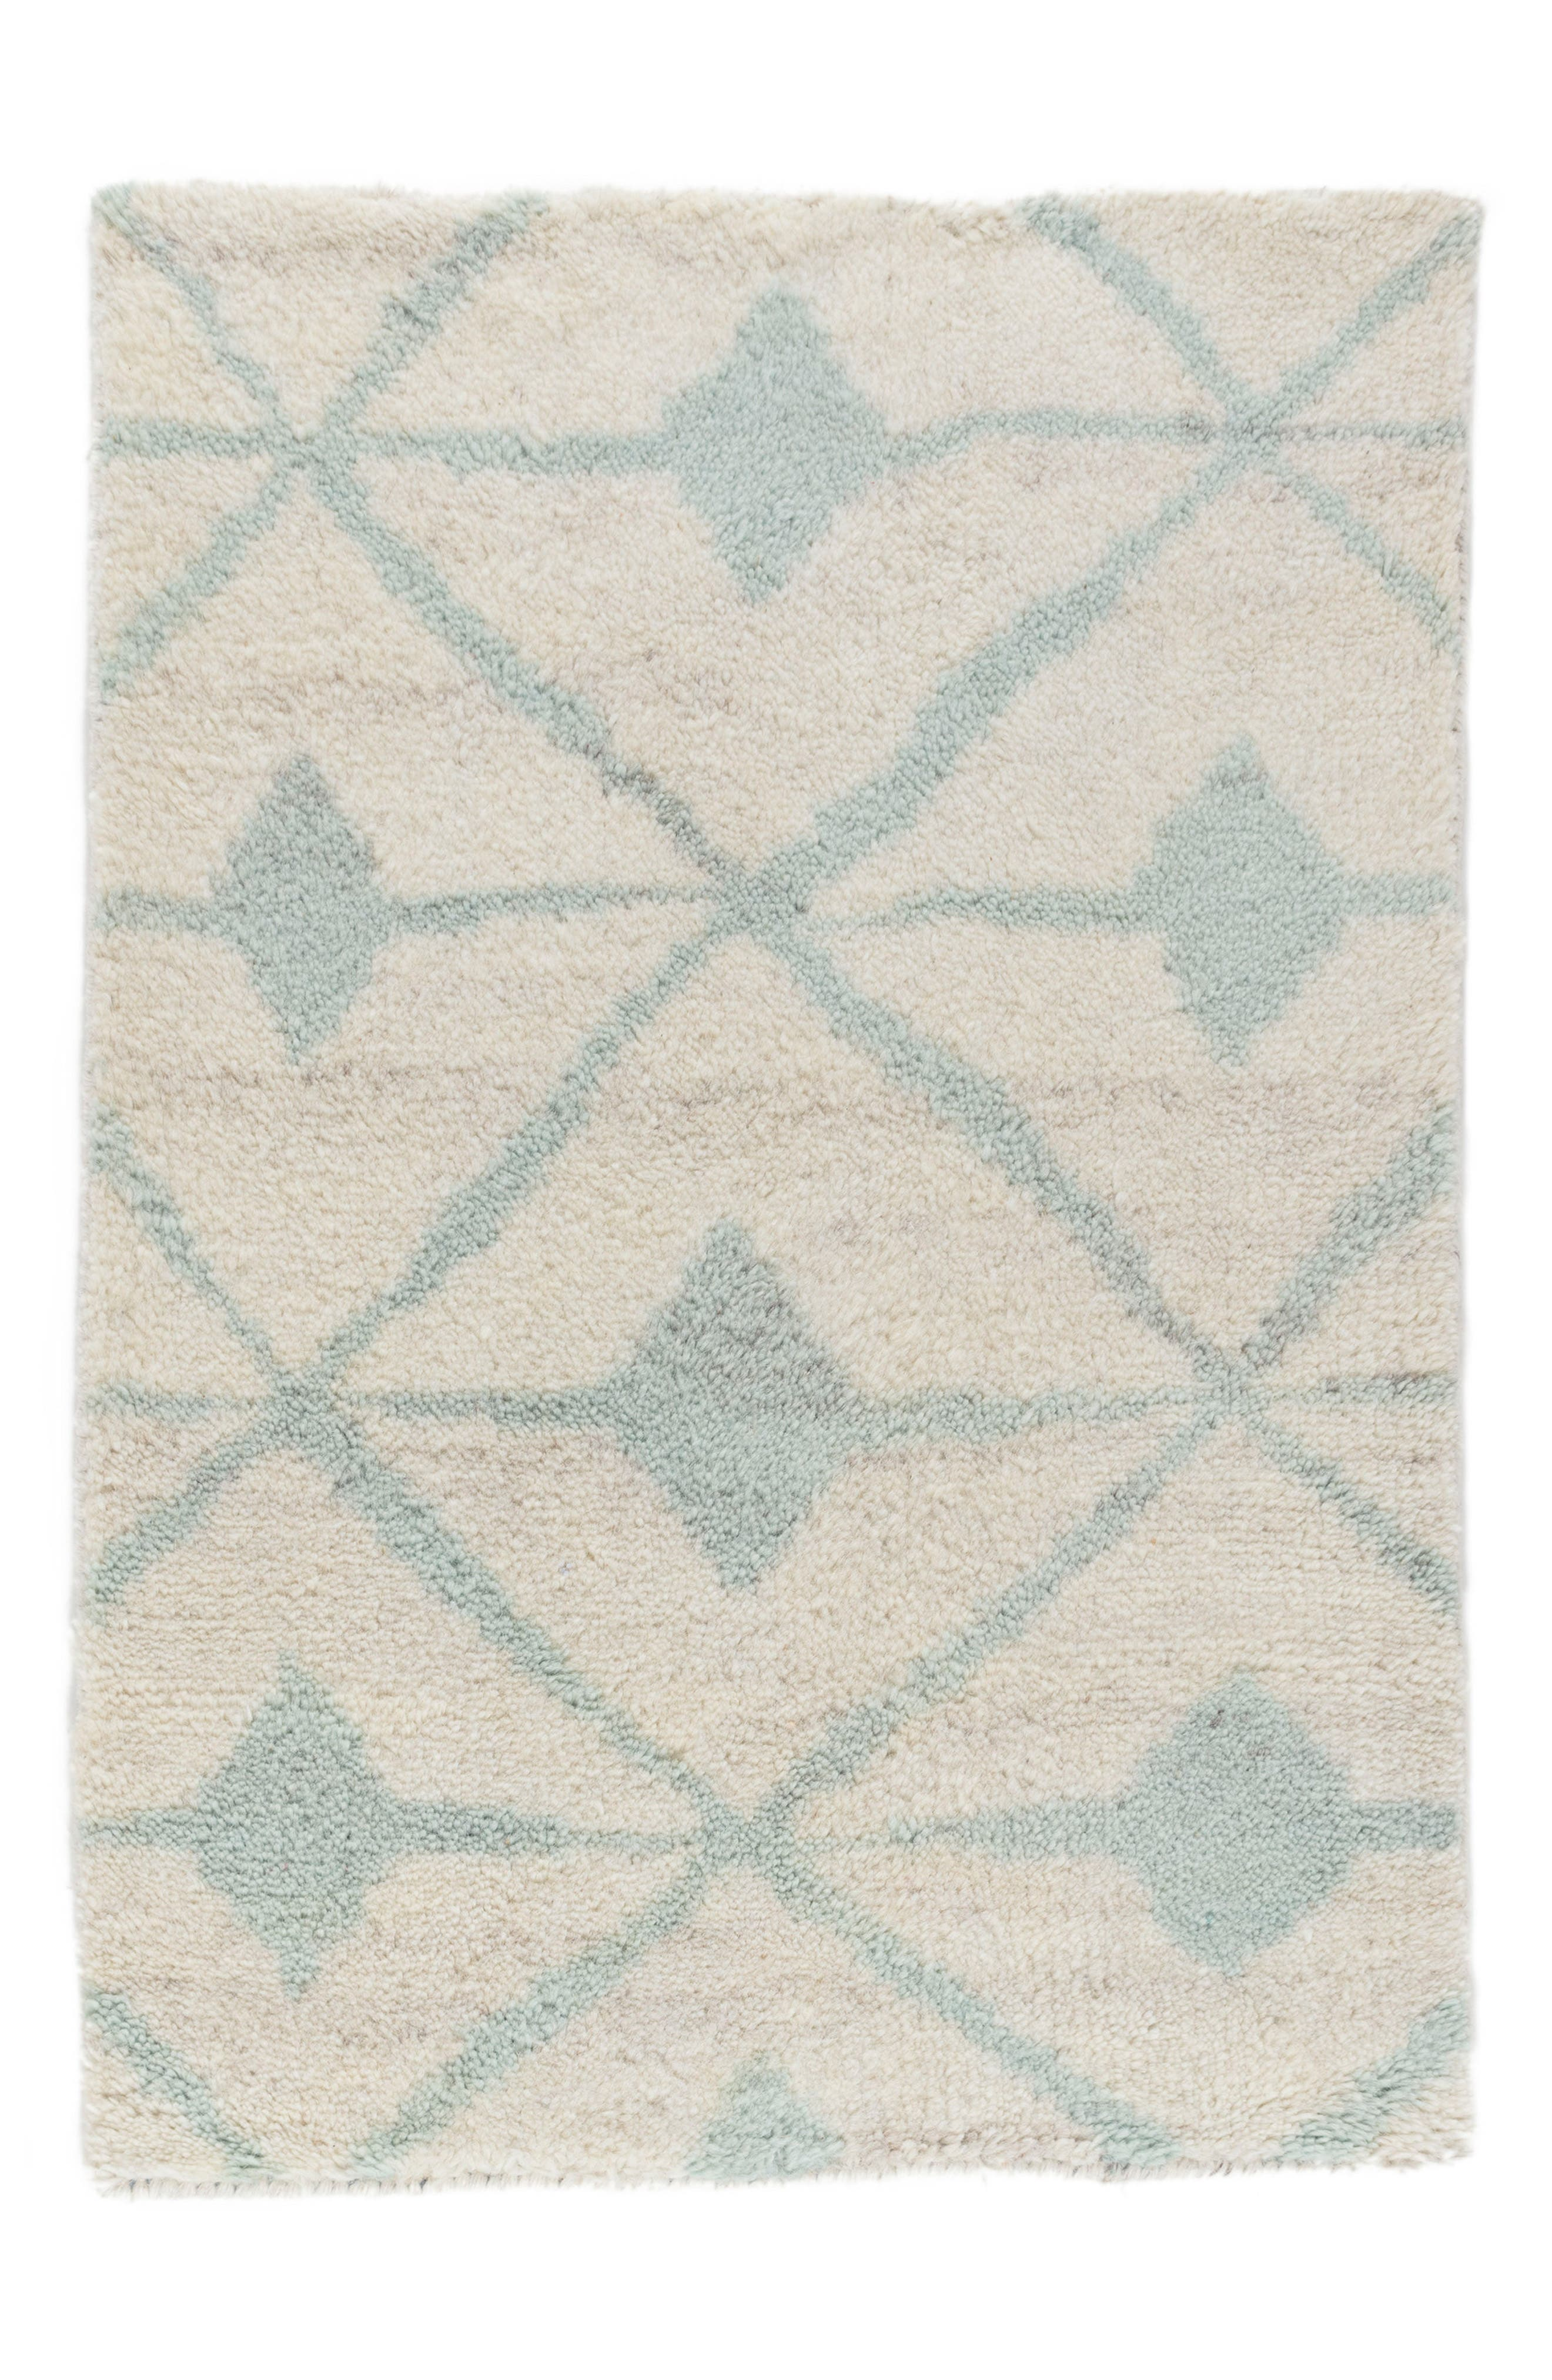 Kenitra Hand Knotted Rug,                         Main,                         color, Robins Egg Blue